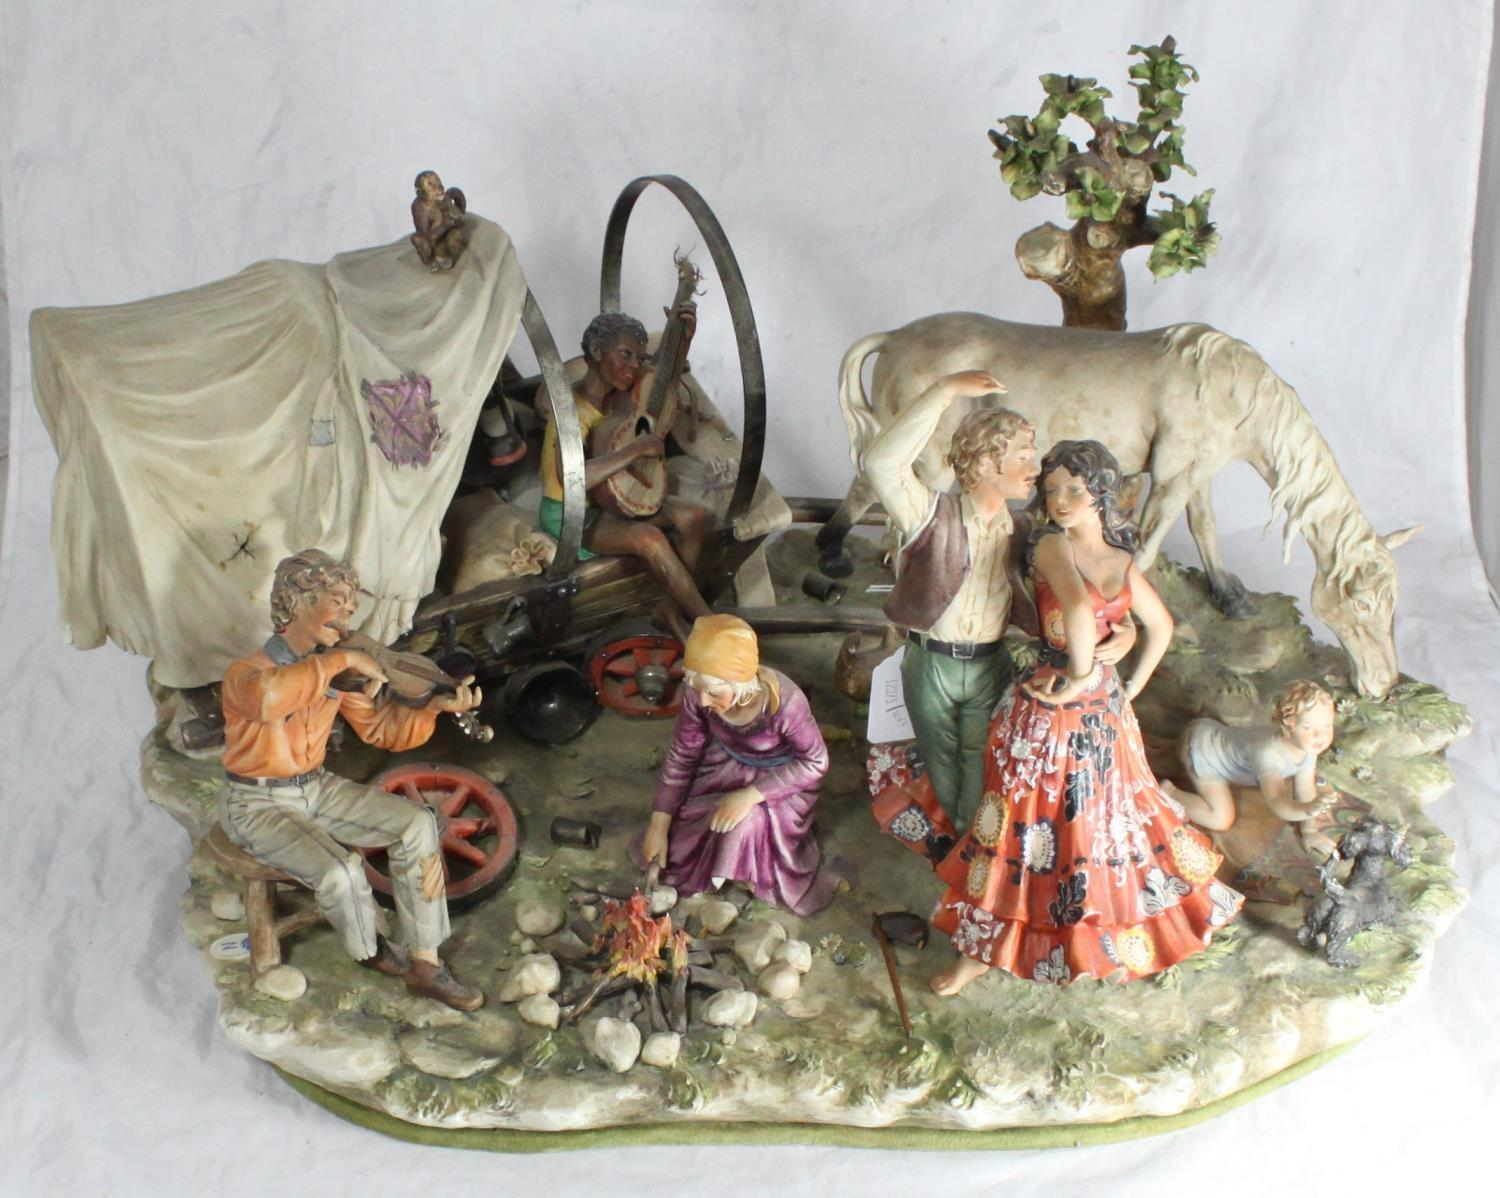 Lot 49 - A large Capodimonte figure-group entitled 'Gypsy Encampment' by Sandro Maggioni, modelled with